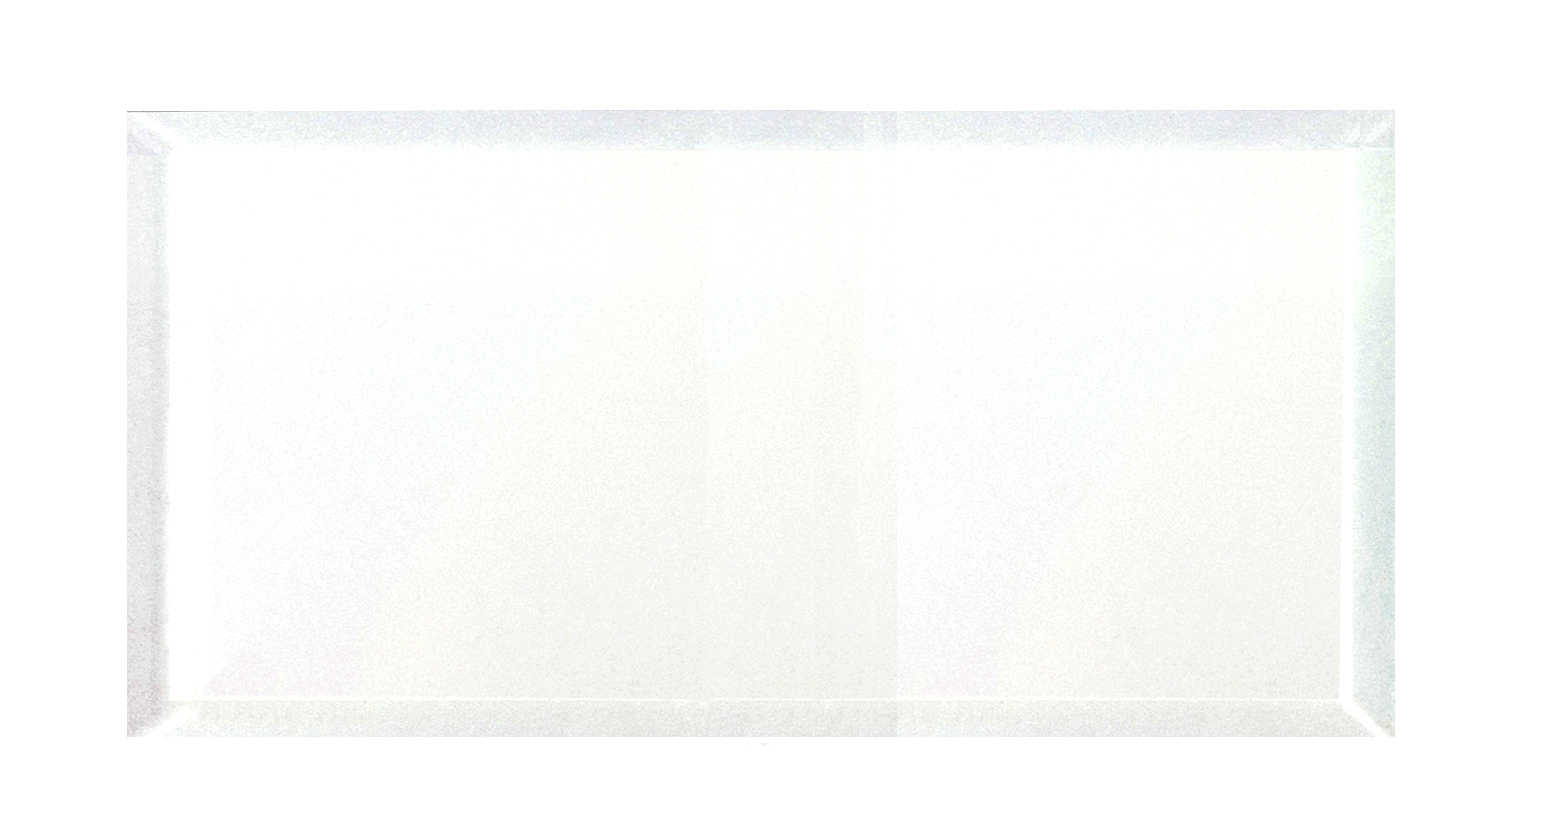 Abolos- Frosted Elegance 8' x 16' Glass Backsplash Tile in Glossy White (16sqft / 18pc Box)